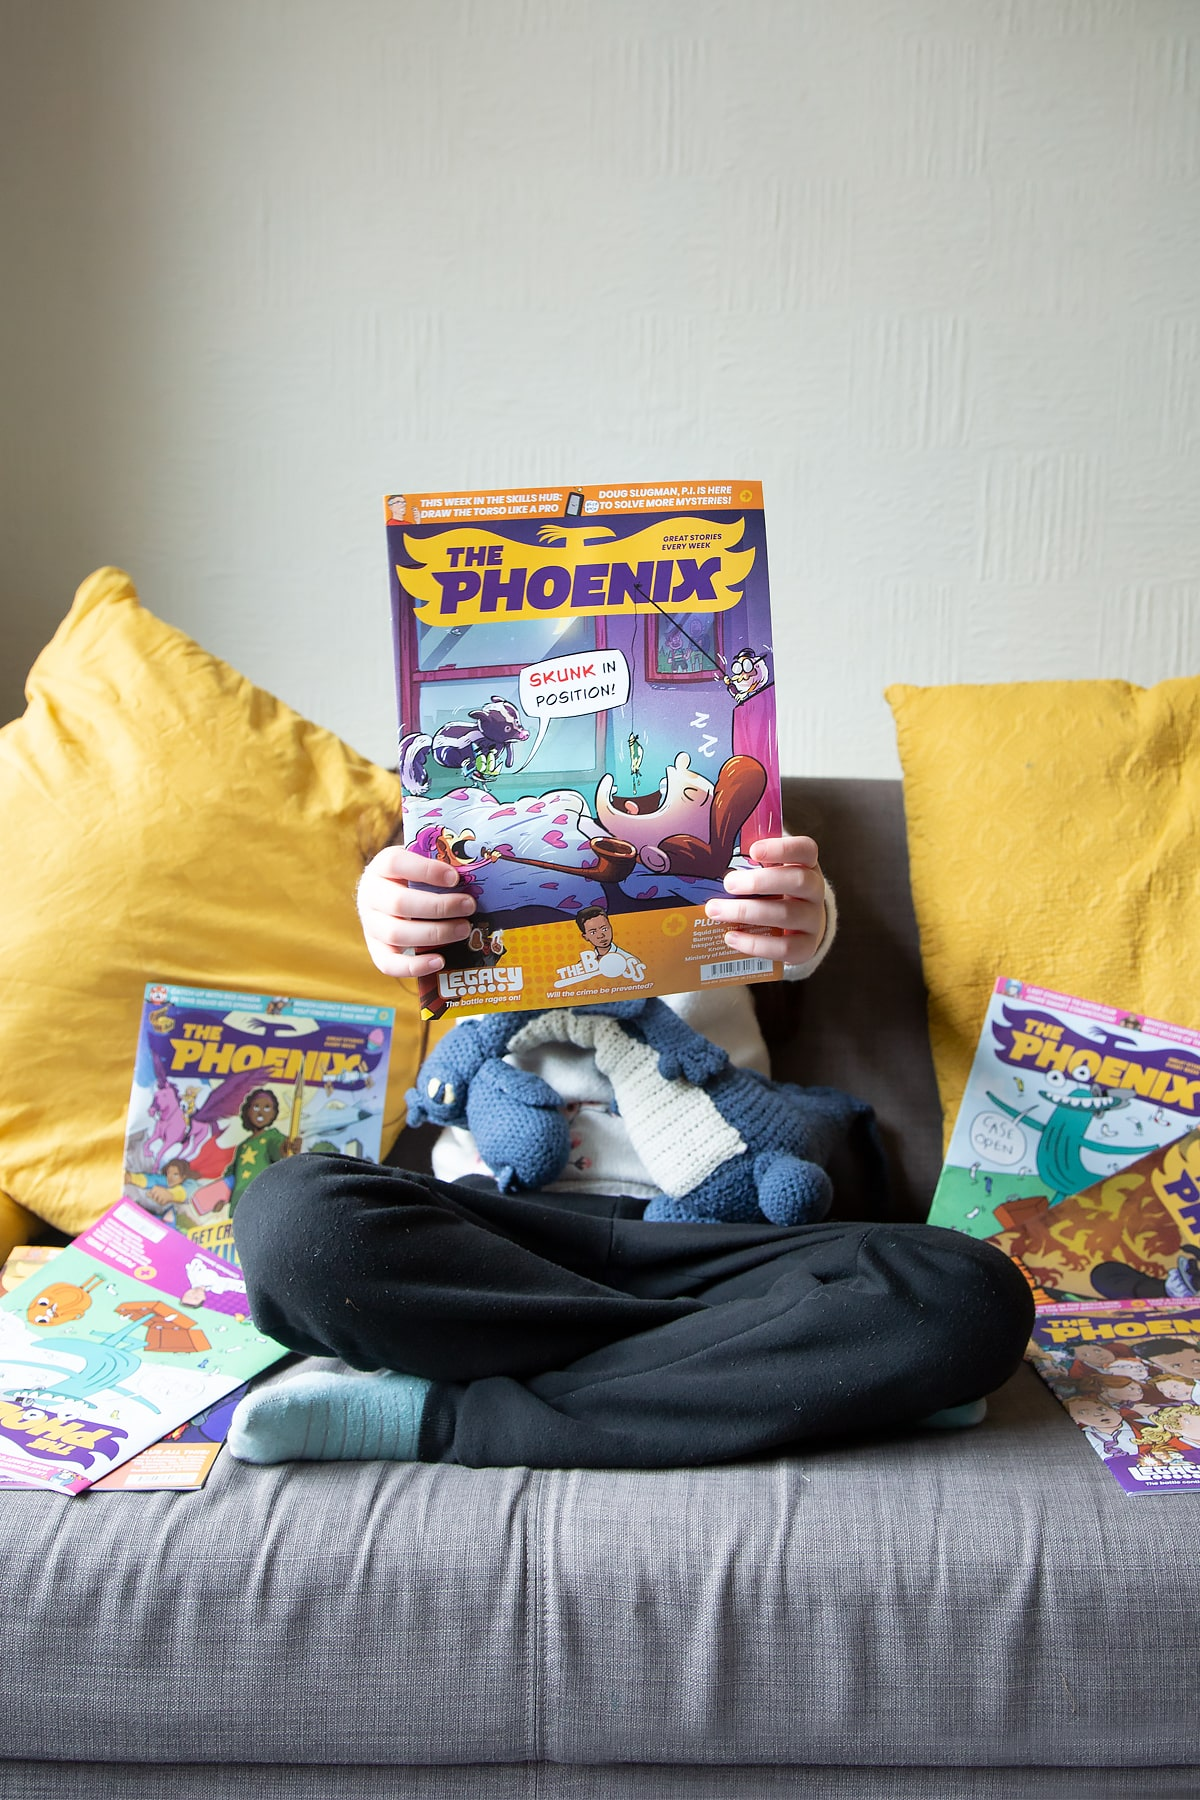 A child sitting on a sofa holding The Phoenix magazine outwards towards the camera